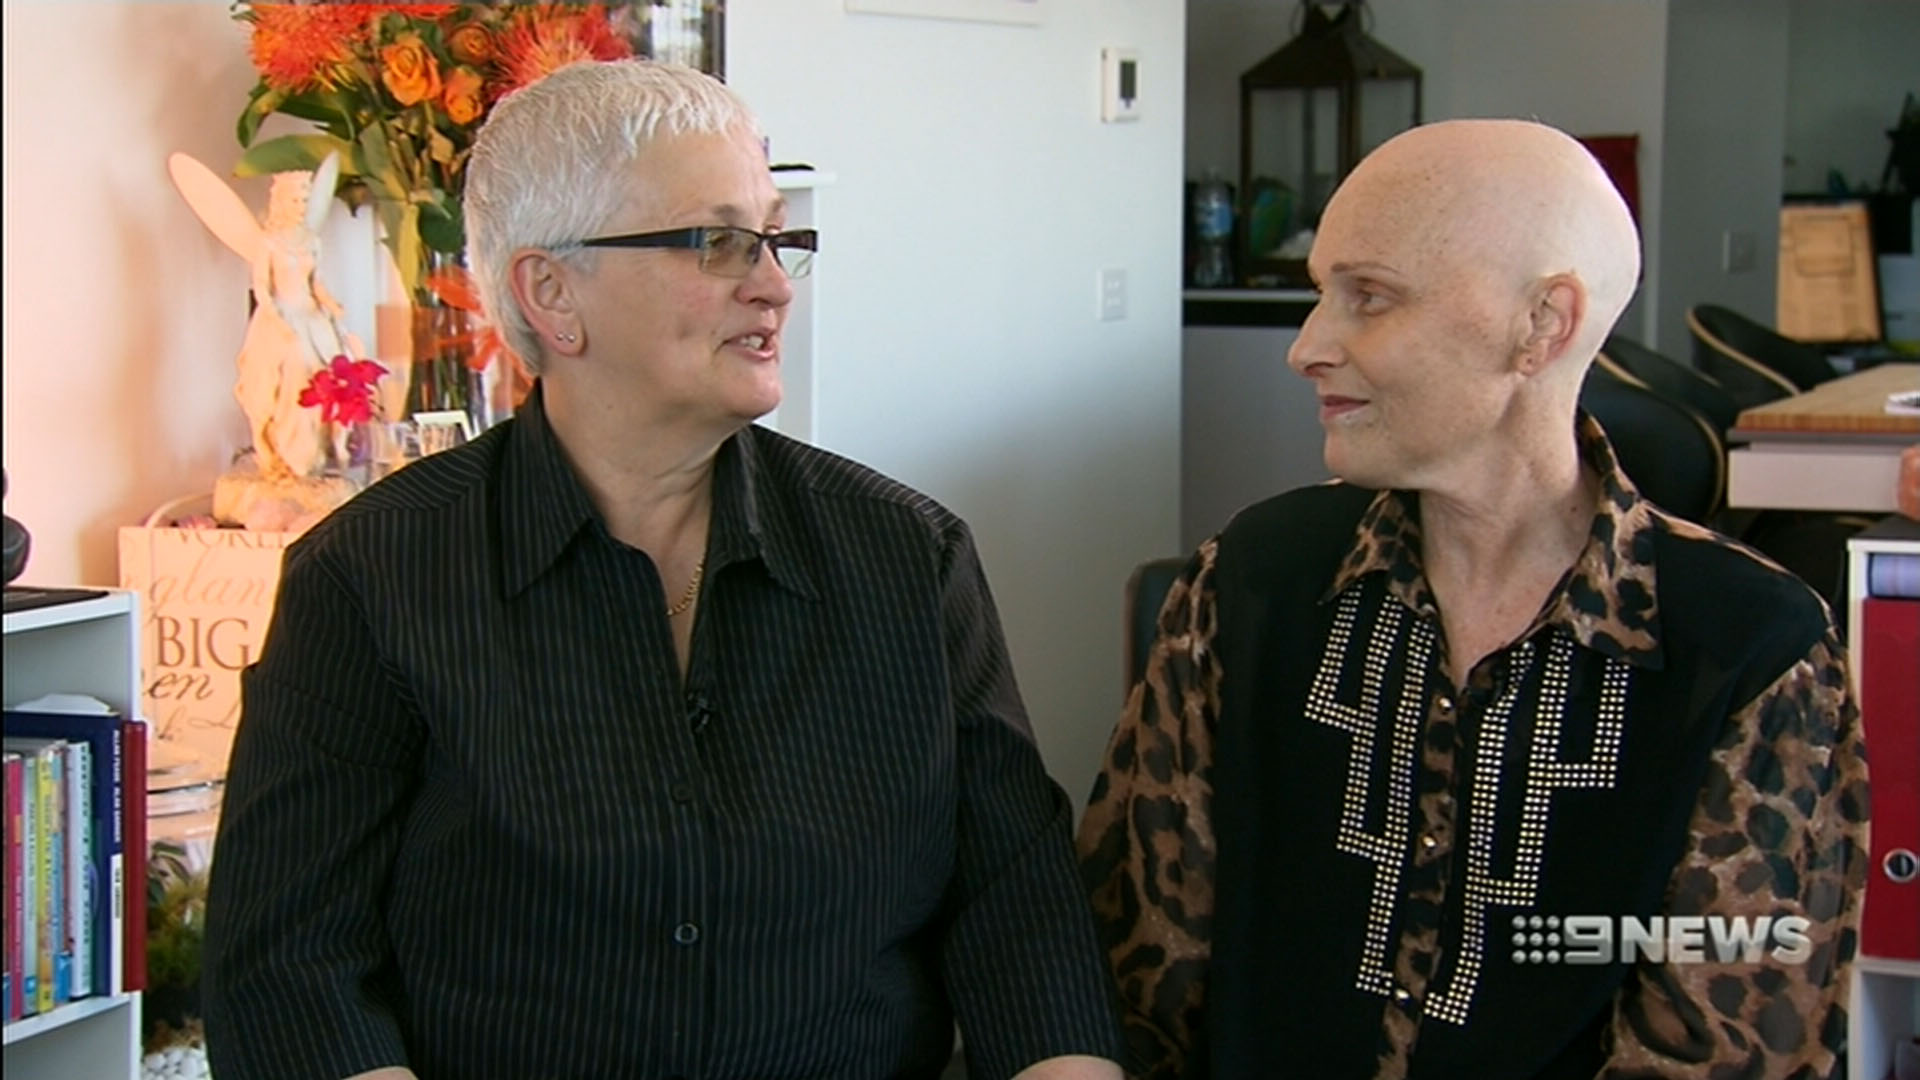 Melbourne couple to be first to same-sex marriage in Victoria